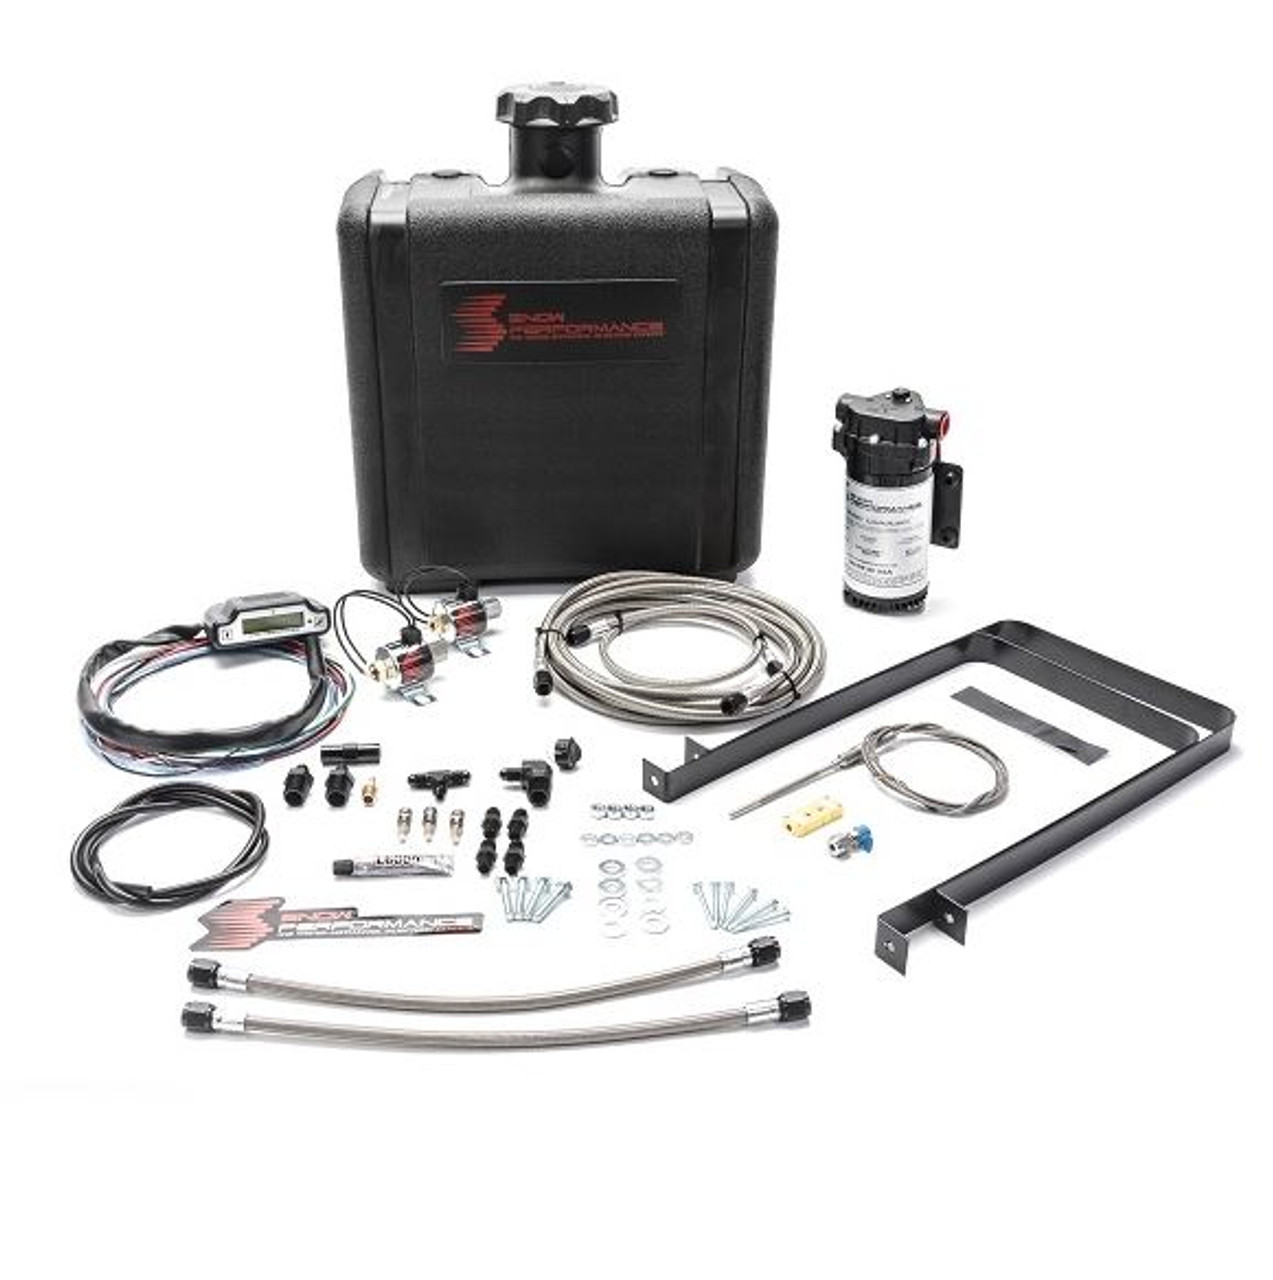 Snow Performance Diesel Stage 3 Boost Cooler Water-Methanol Injection Kit for Dodge Cummins 5.9L (Stainless Steel Braided Line & AN Fittings) (SNO-500-BRD)